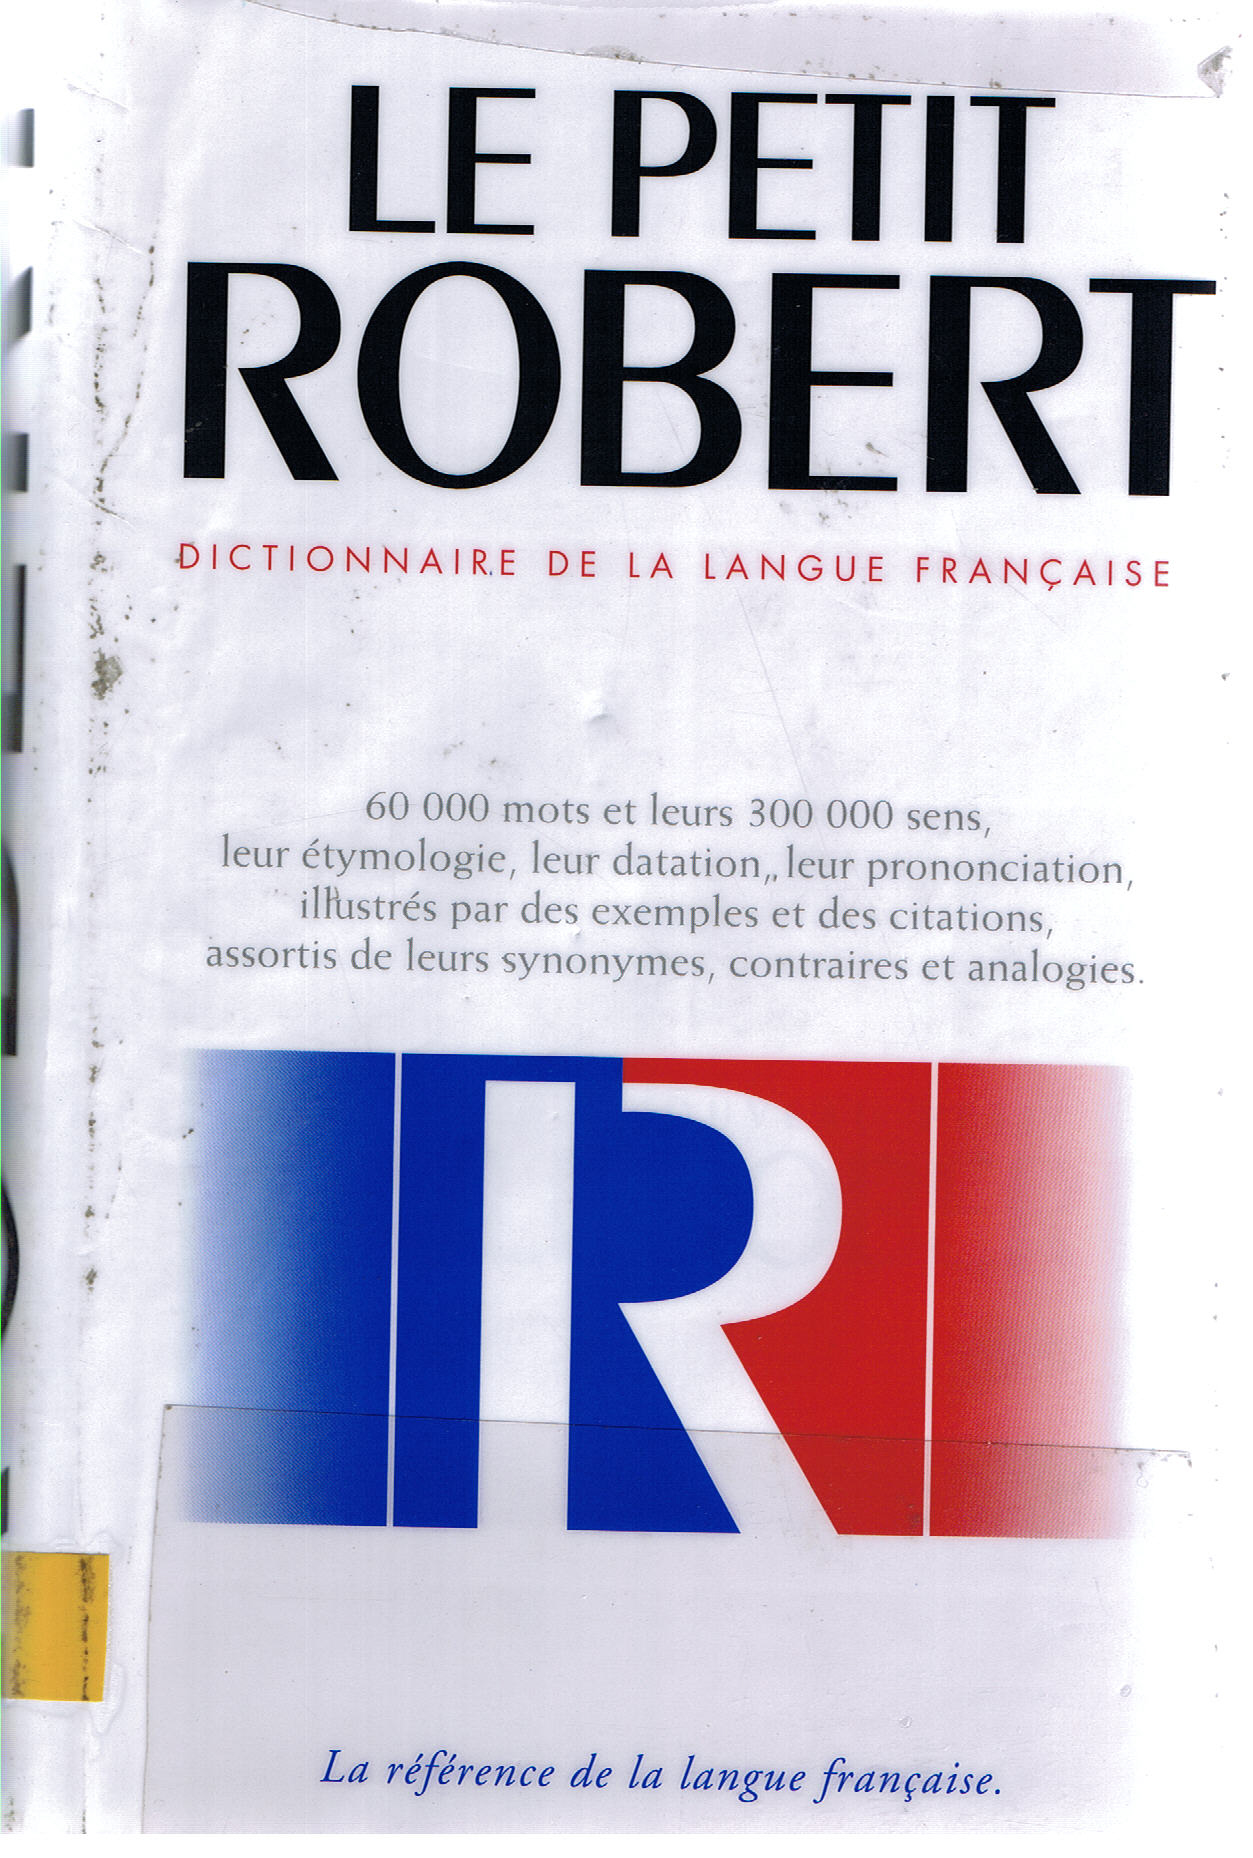 AVT_Dictionnaires-Le-Robert_1467.jpeg